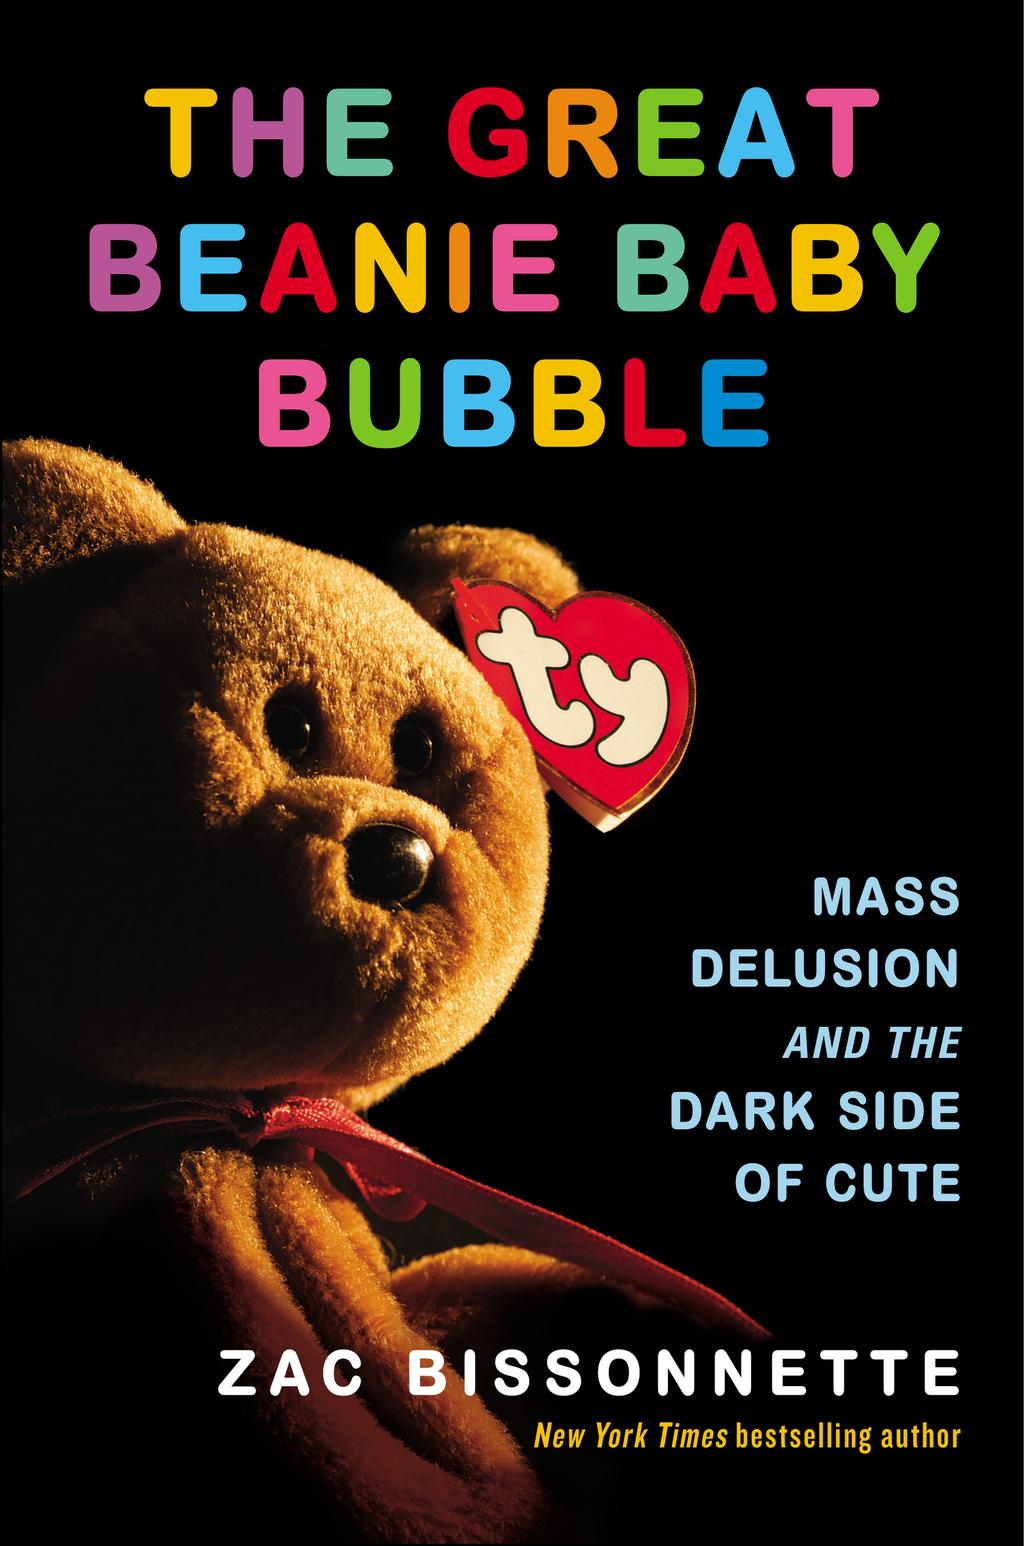 The Great Beanie Baby Bubble Mass Delusion and the Dark Side of Cute